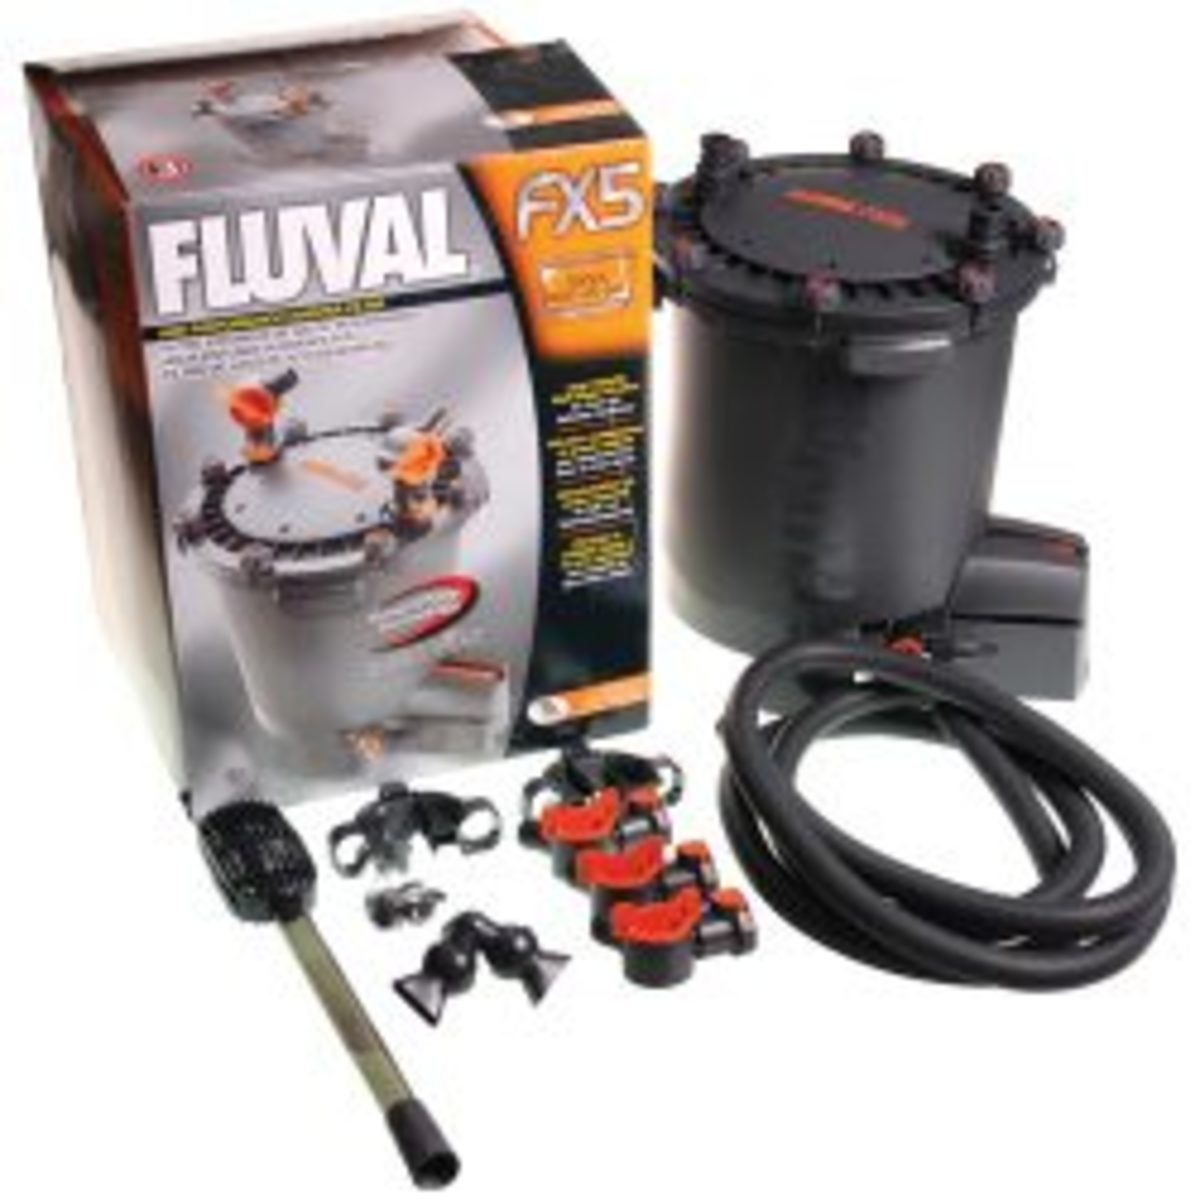 Aquarium Canister Filters: The Fluval FX5 Filter